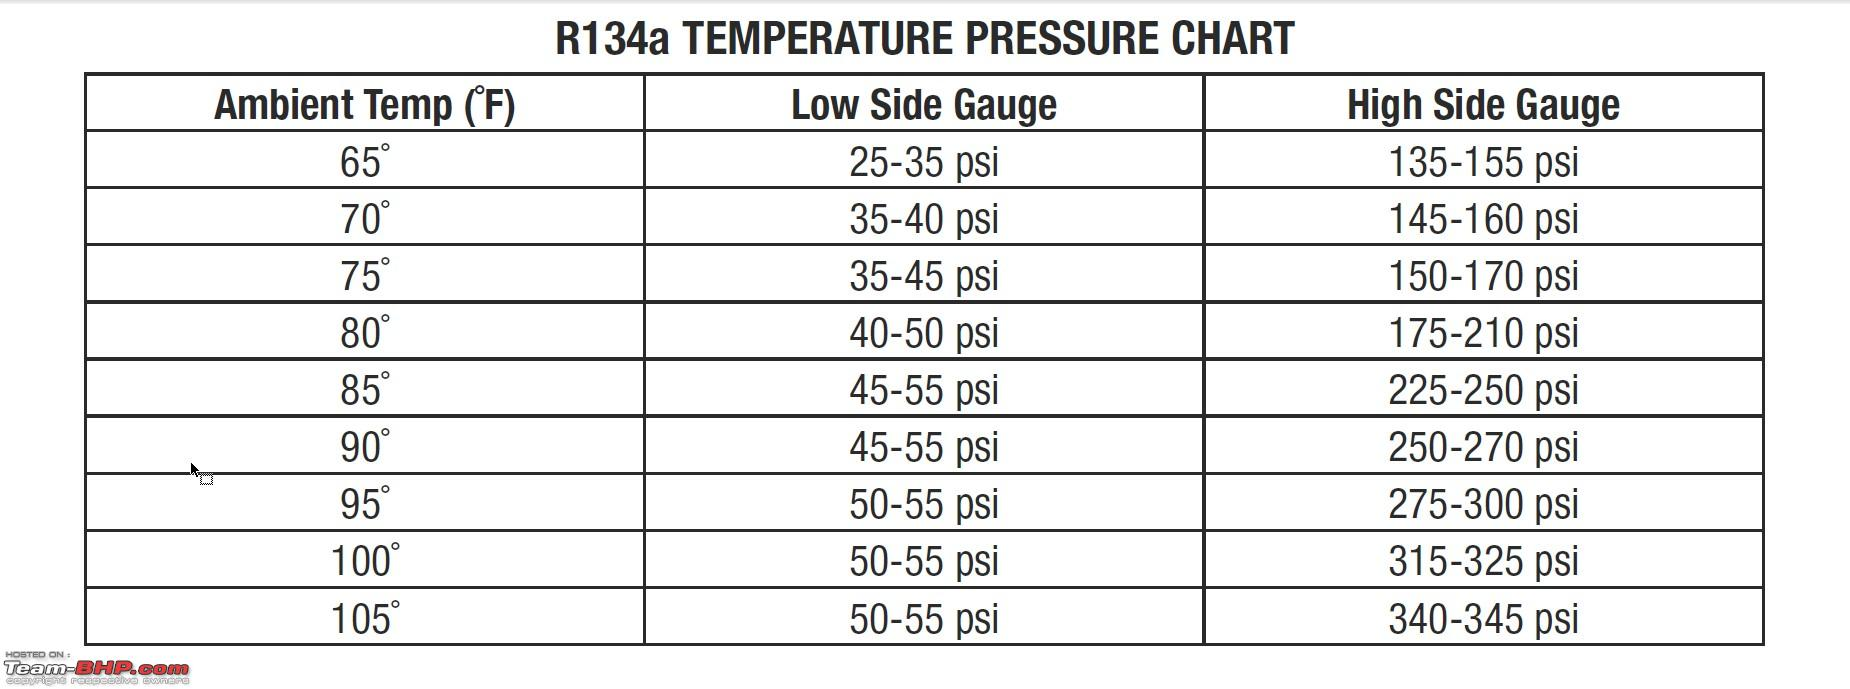 uses of refrigeration low pressure controls industrial controls